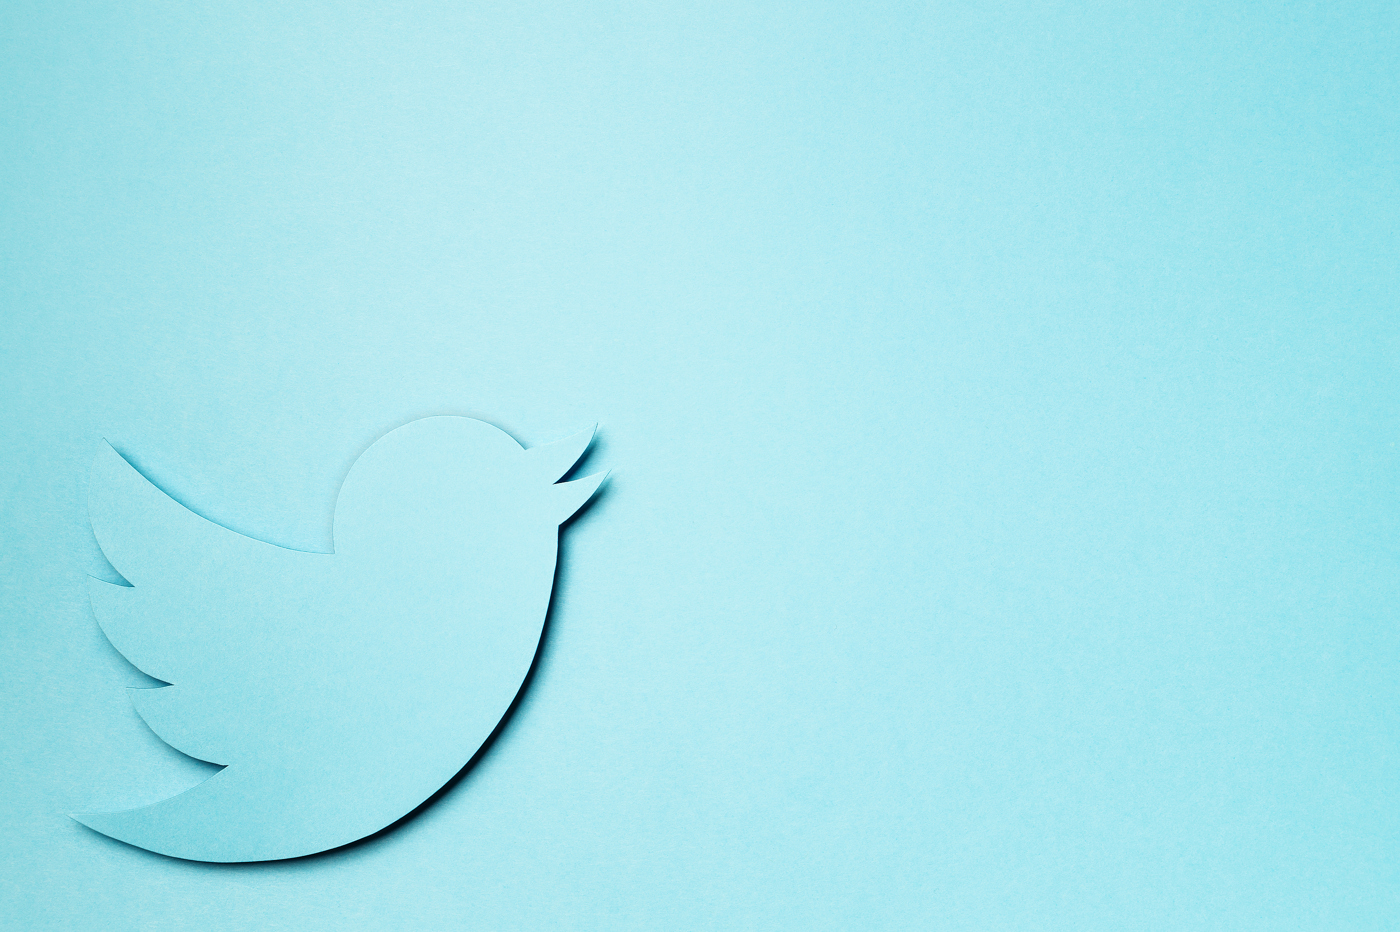 Twitter TWTR stock news and analysis